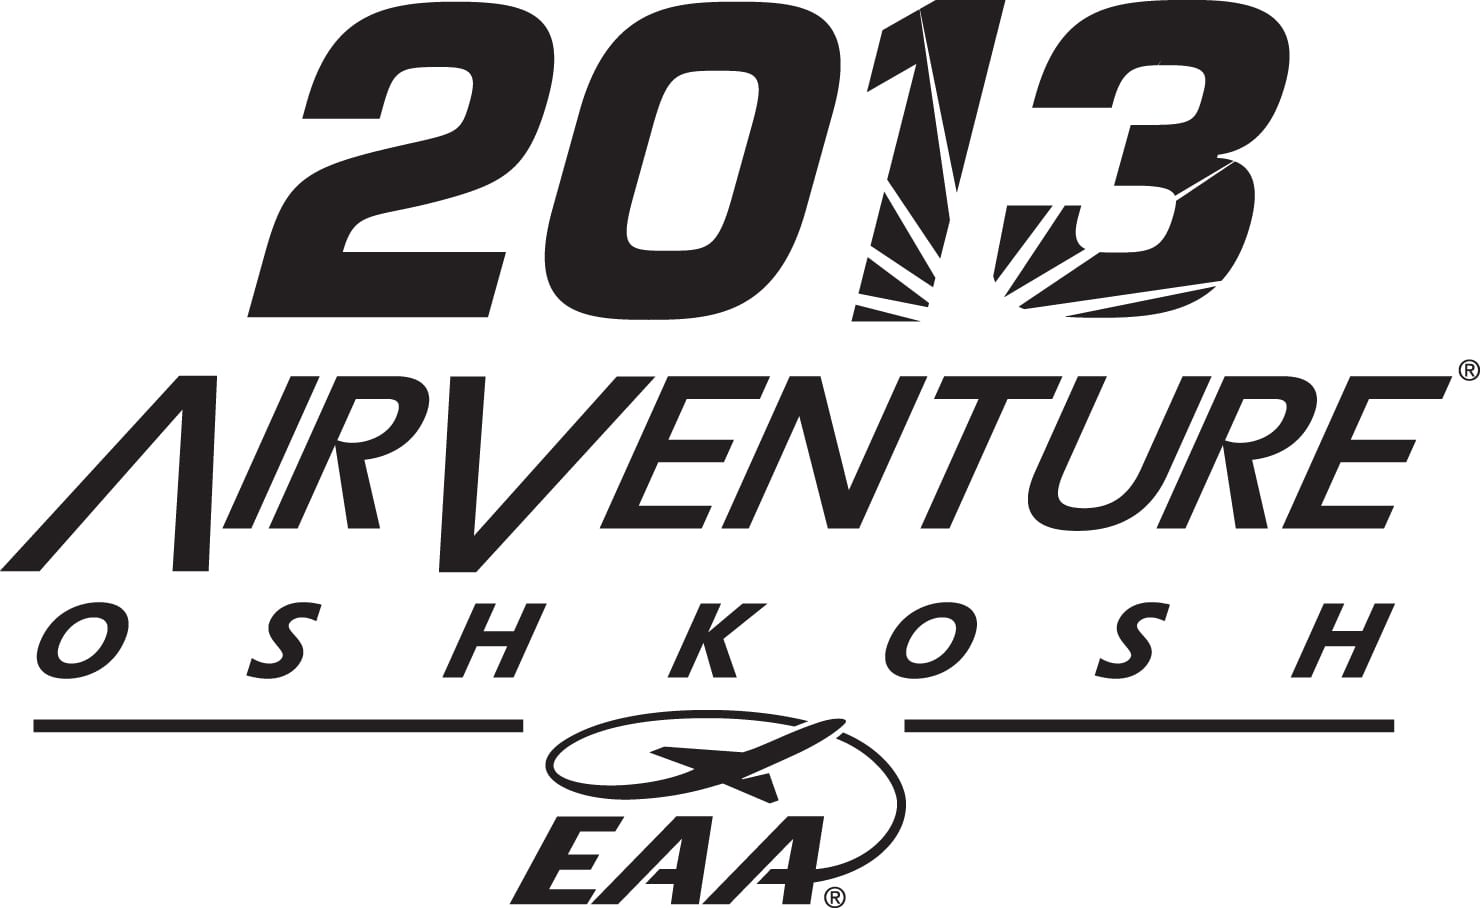 Advance tickets go on sale for EAA AirVenture 2013